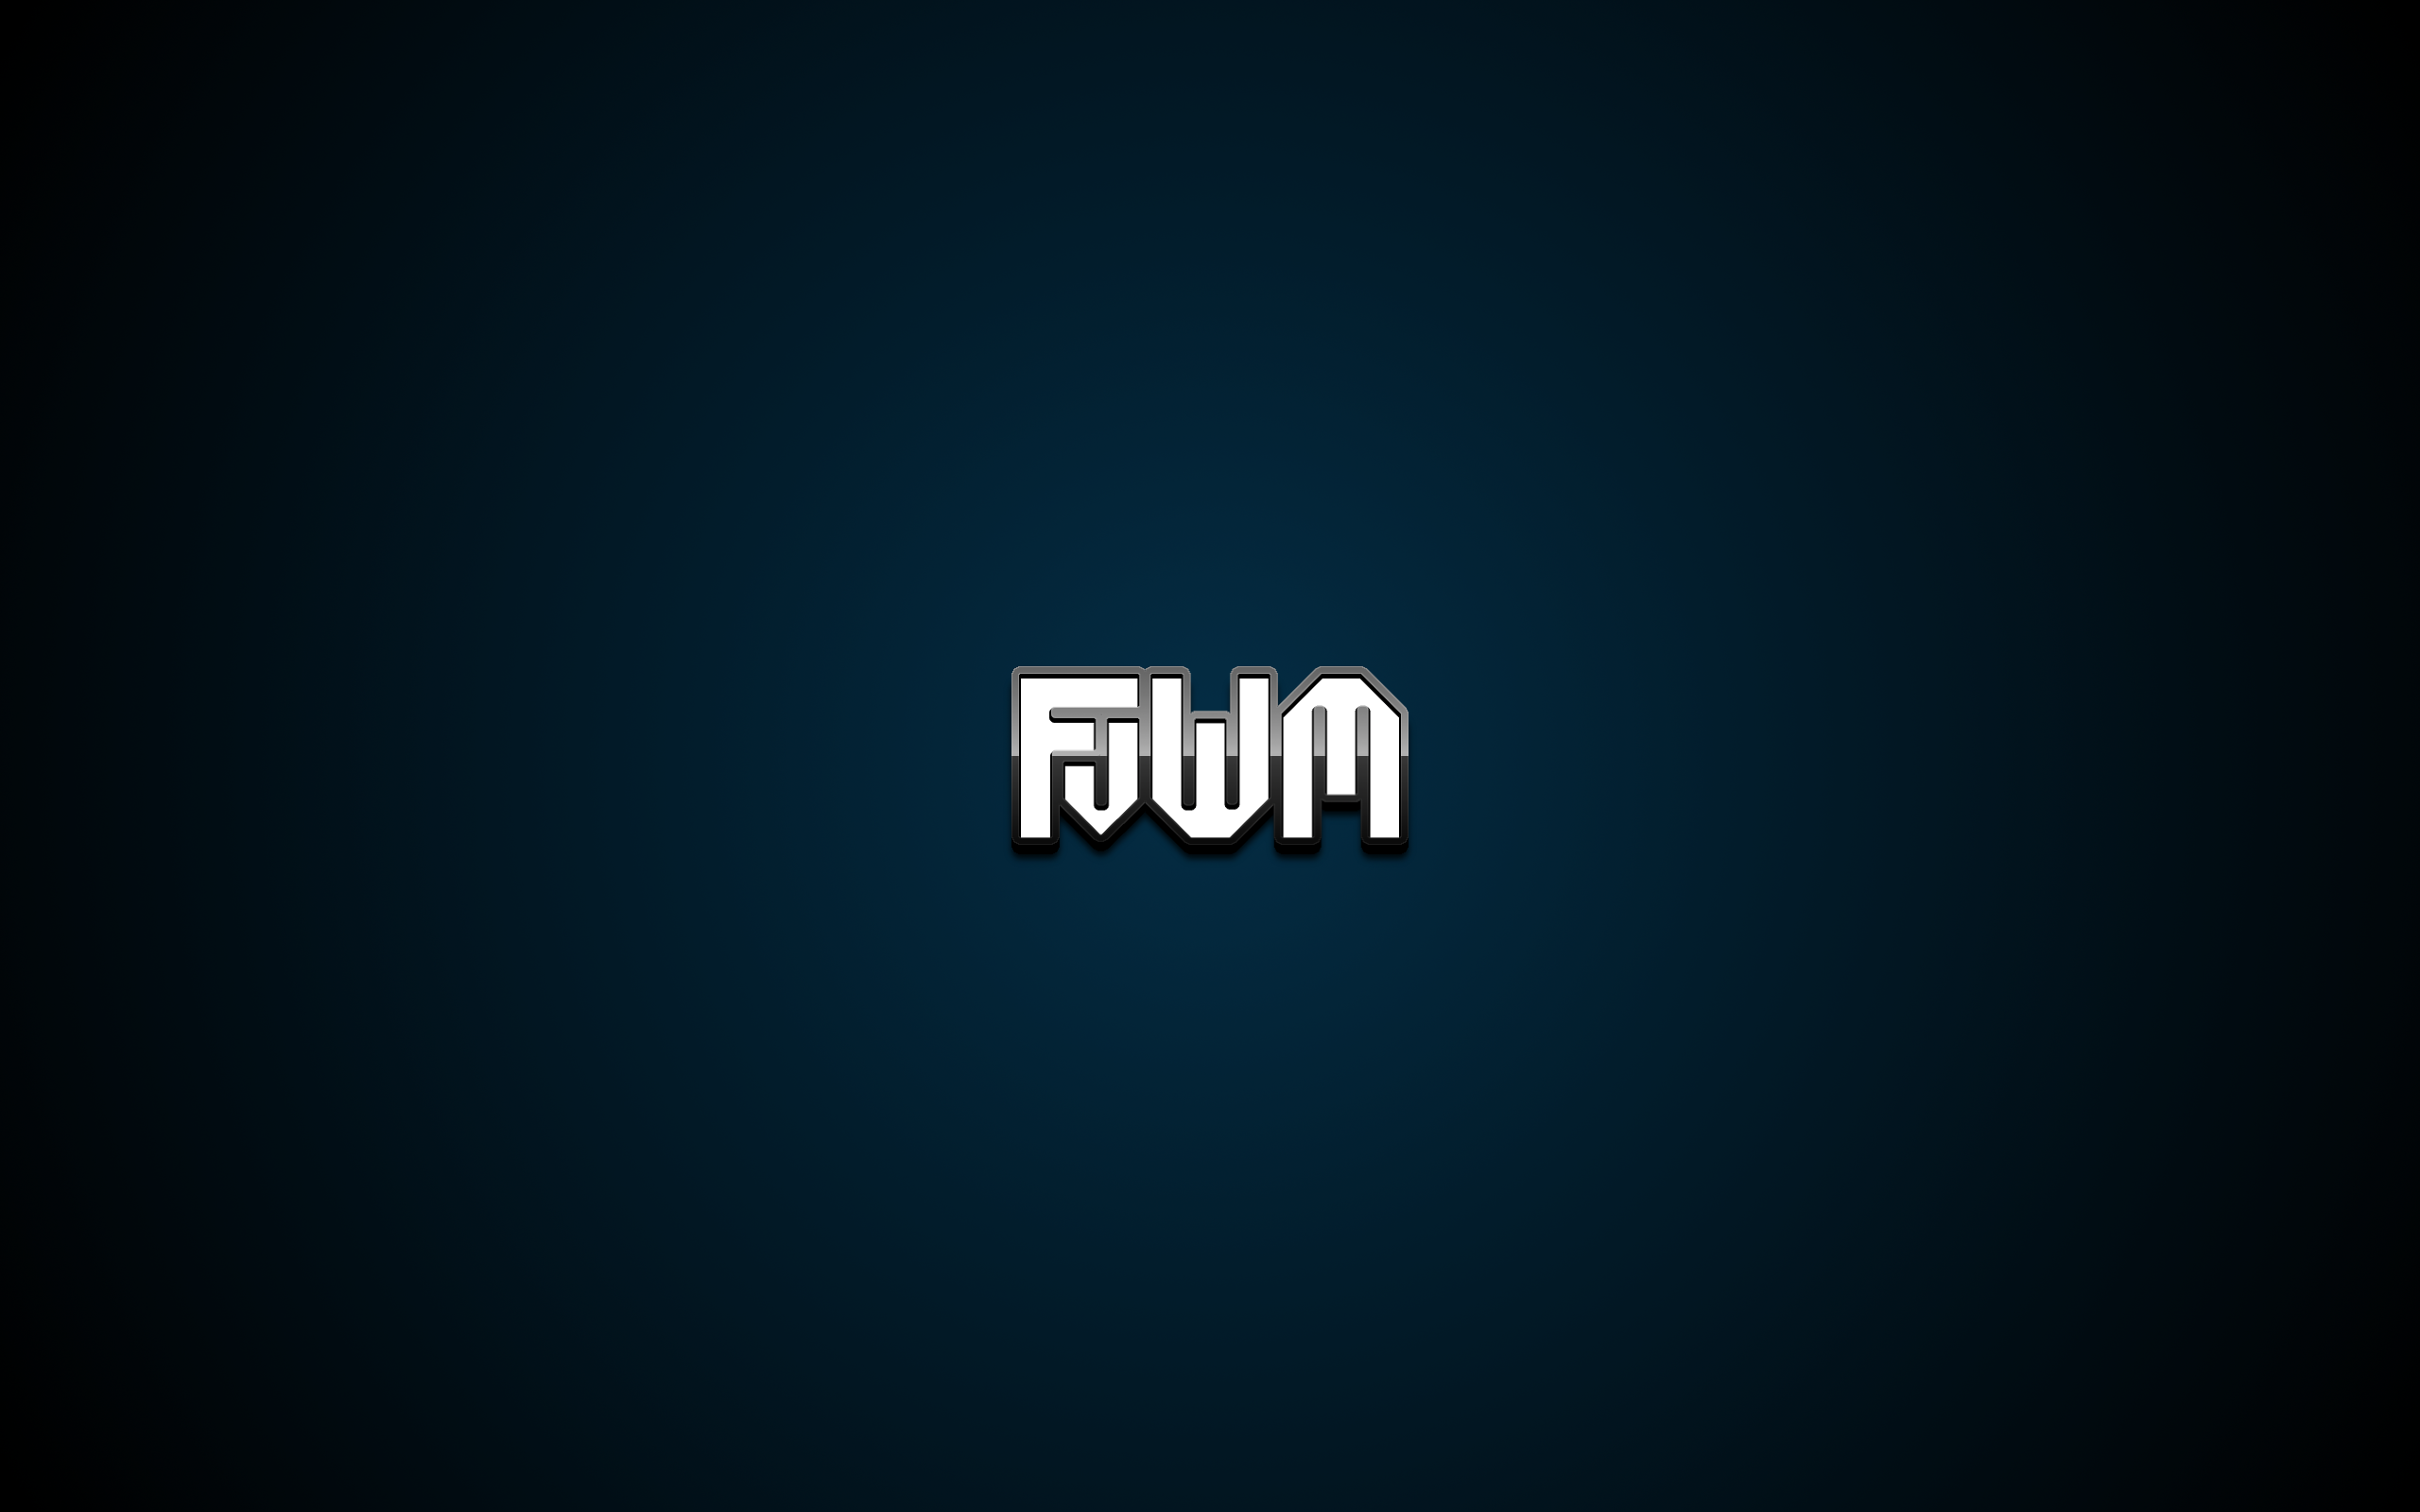 FVWM Wallpaper 003 by PainlessRob